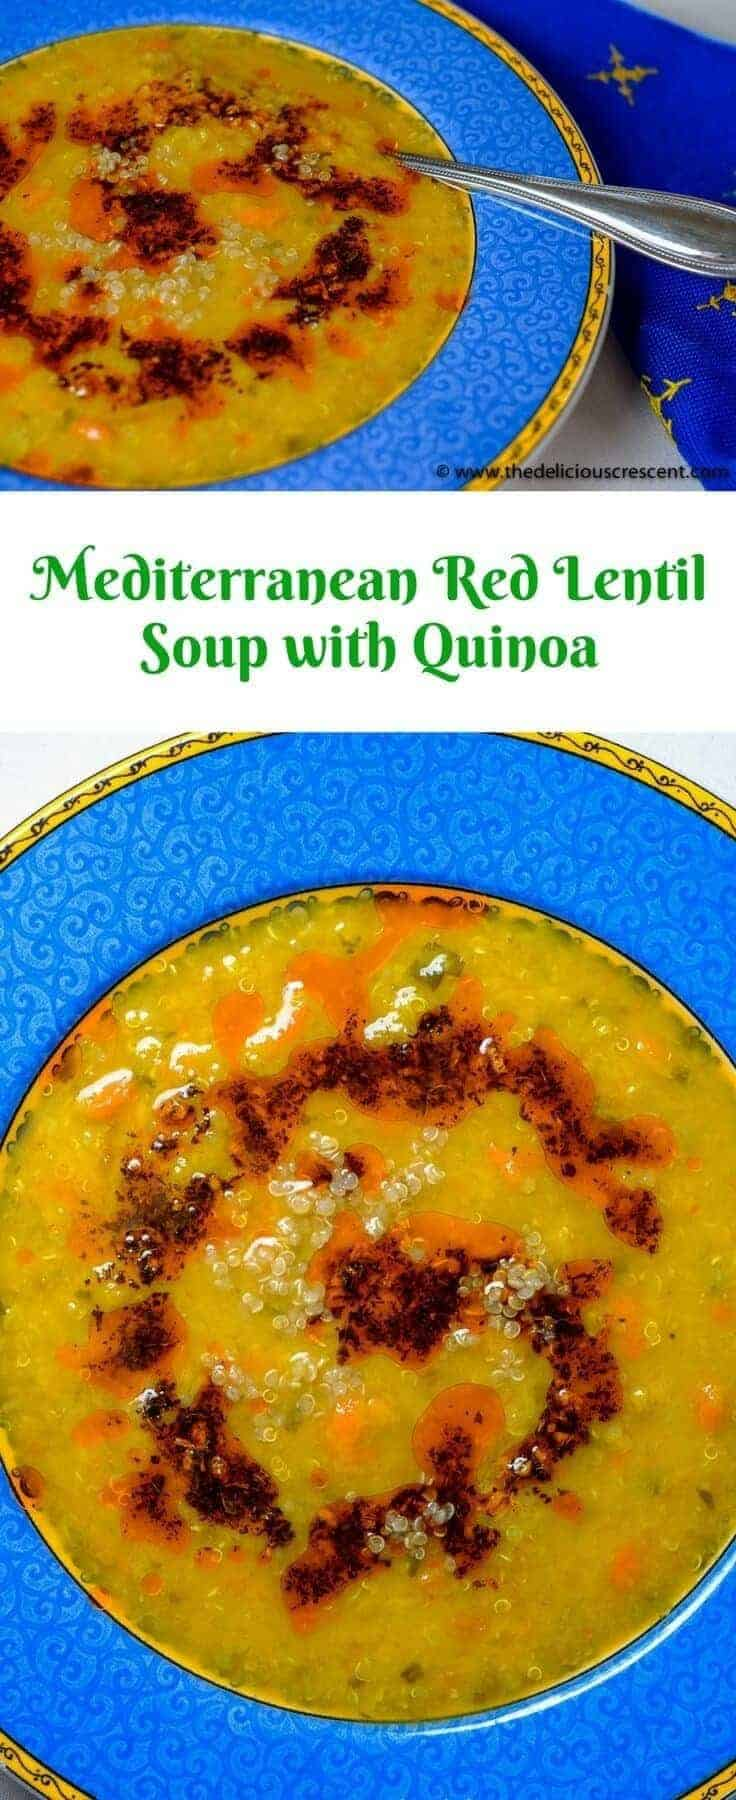 Mediterranean red lentil soup is one of my favorite soups and is so easy to prepare. Full of flavor and very healthy. It is gluten free and a good source of protein and fiber.